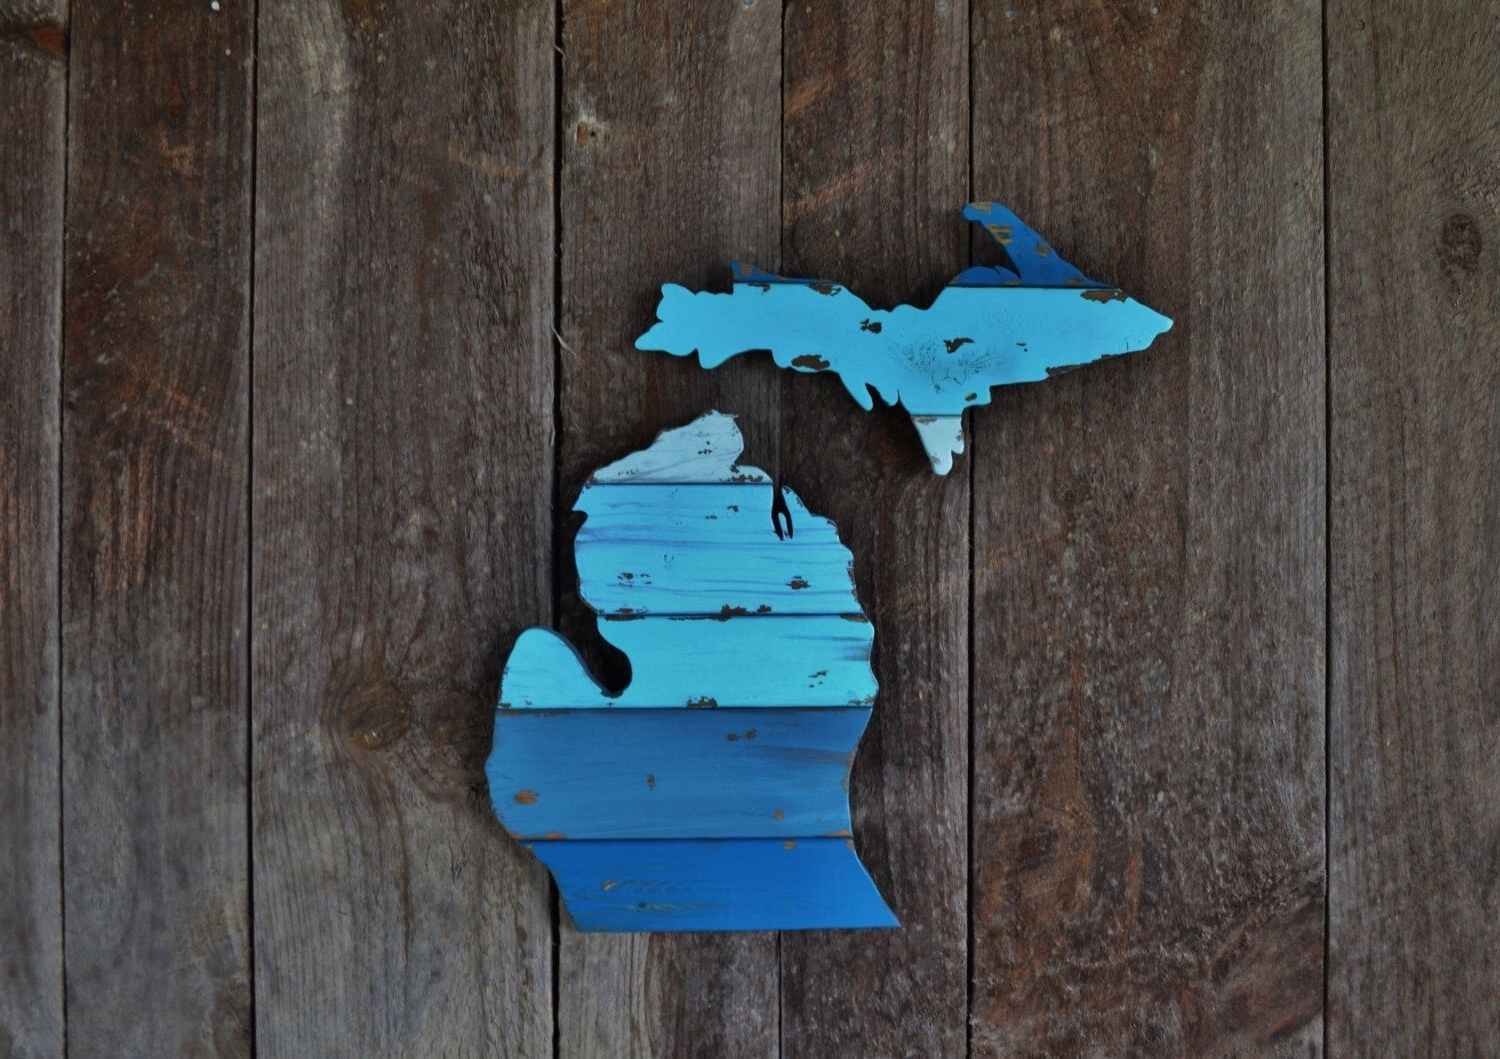 Hand Cut Wooden Michigan Wall Art: The Lelandthewoodnwall On In Current Michigan Wall Art (View 6 of 20)